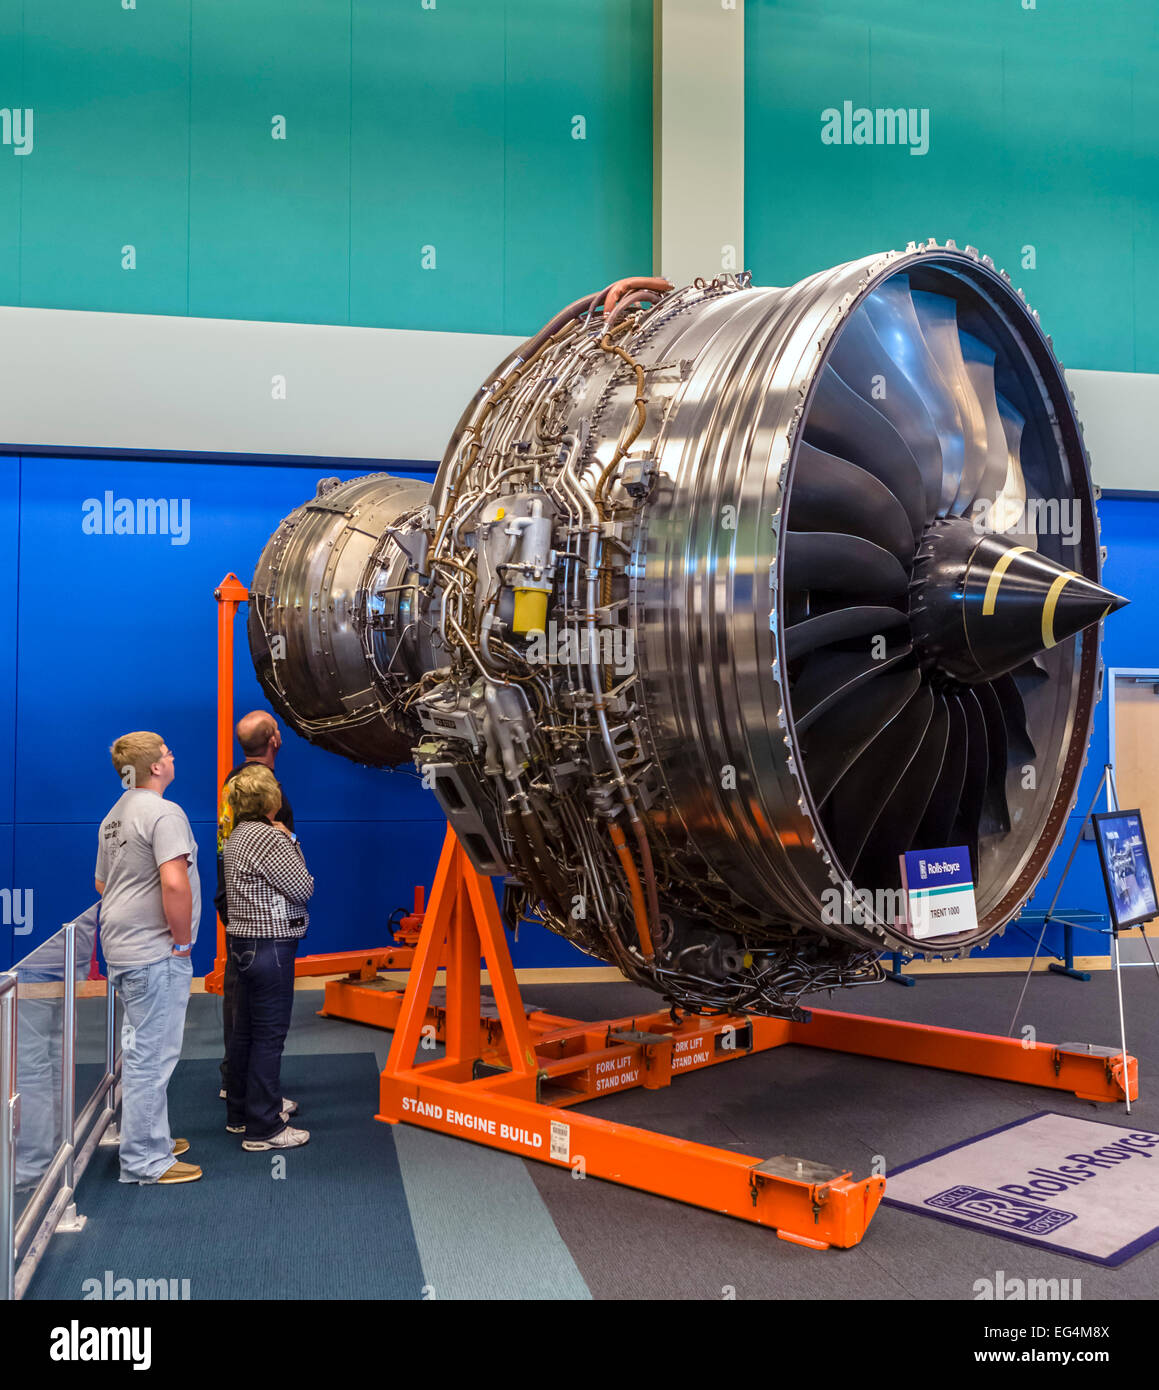 A Rolls-Royce Trent 1000 turbofan engine, Infinity Science Center, John C Stennis Space Center, Mississippi, USA - Stock Image